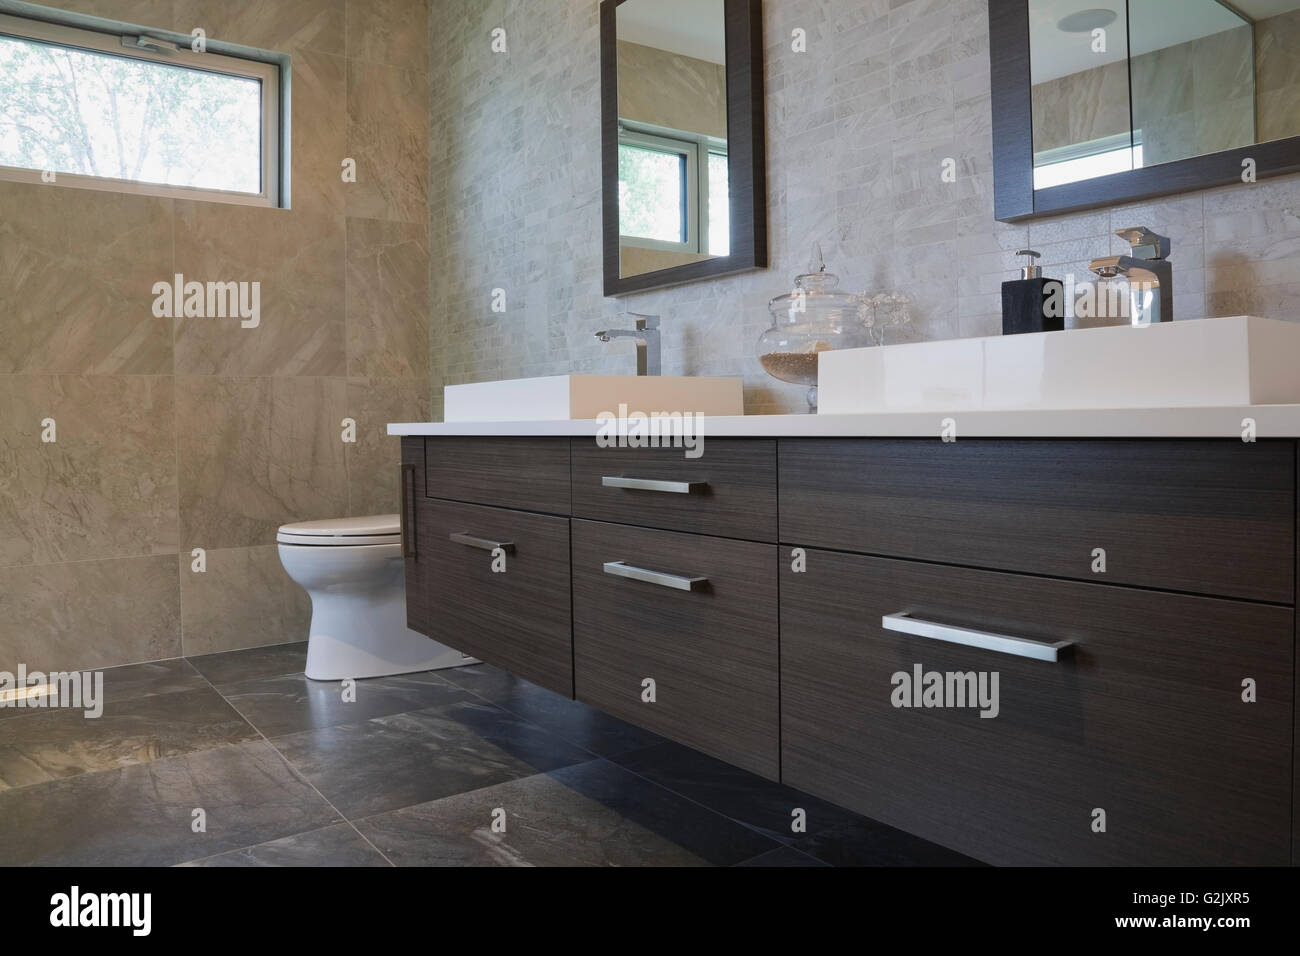 White rectangular porcelain sinks charcoal wooden vanity in a Stock ...